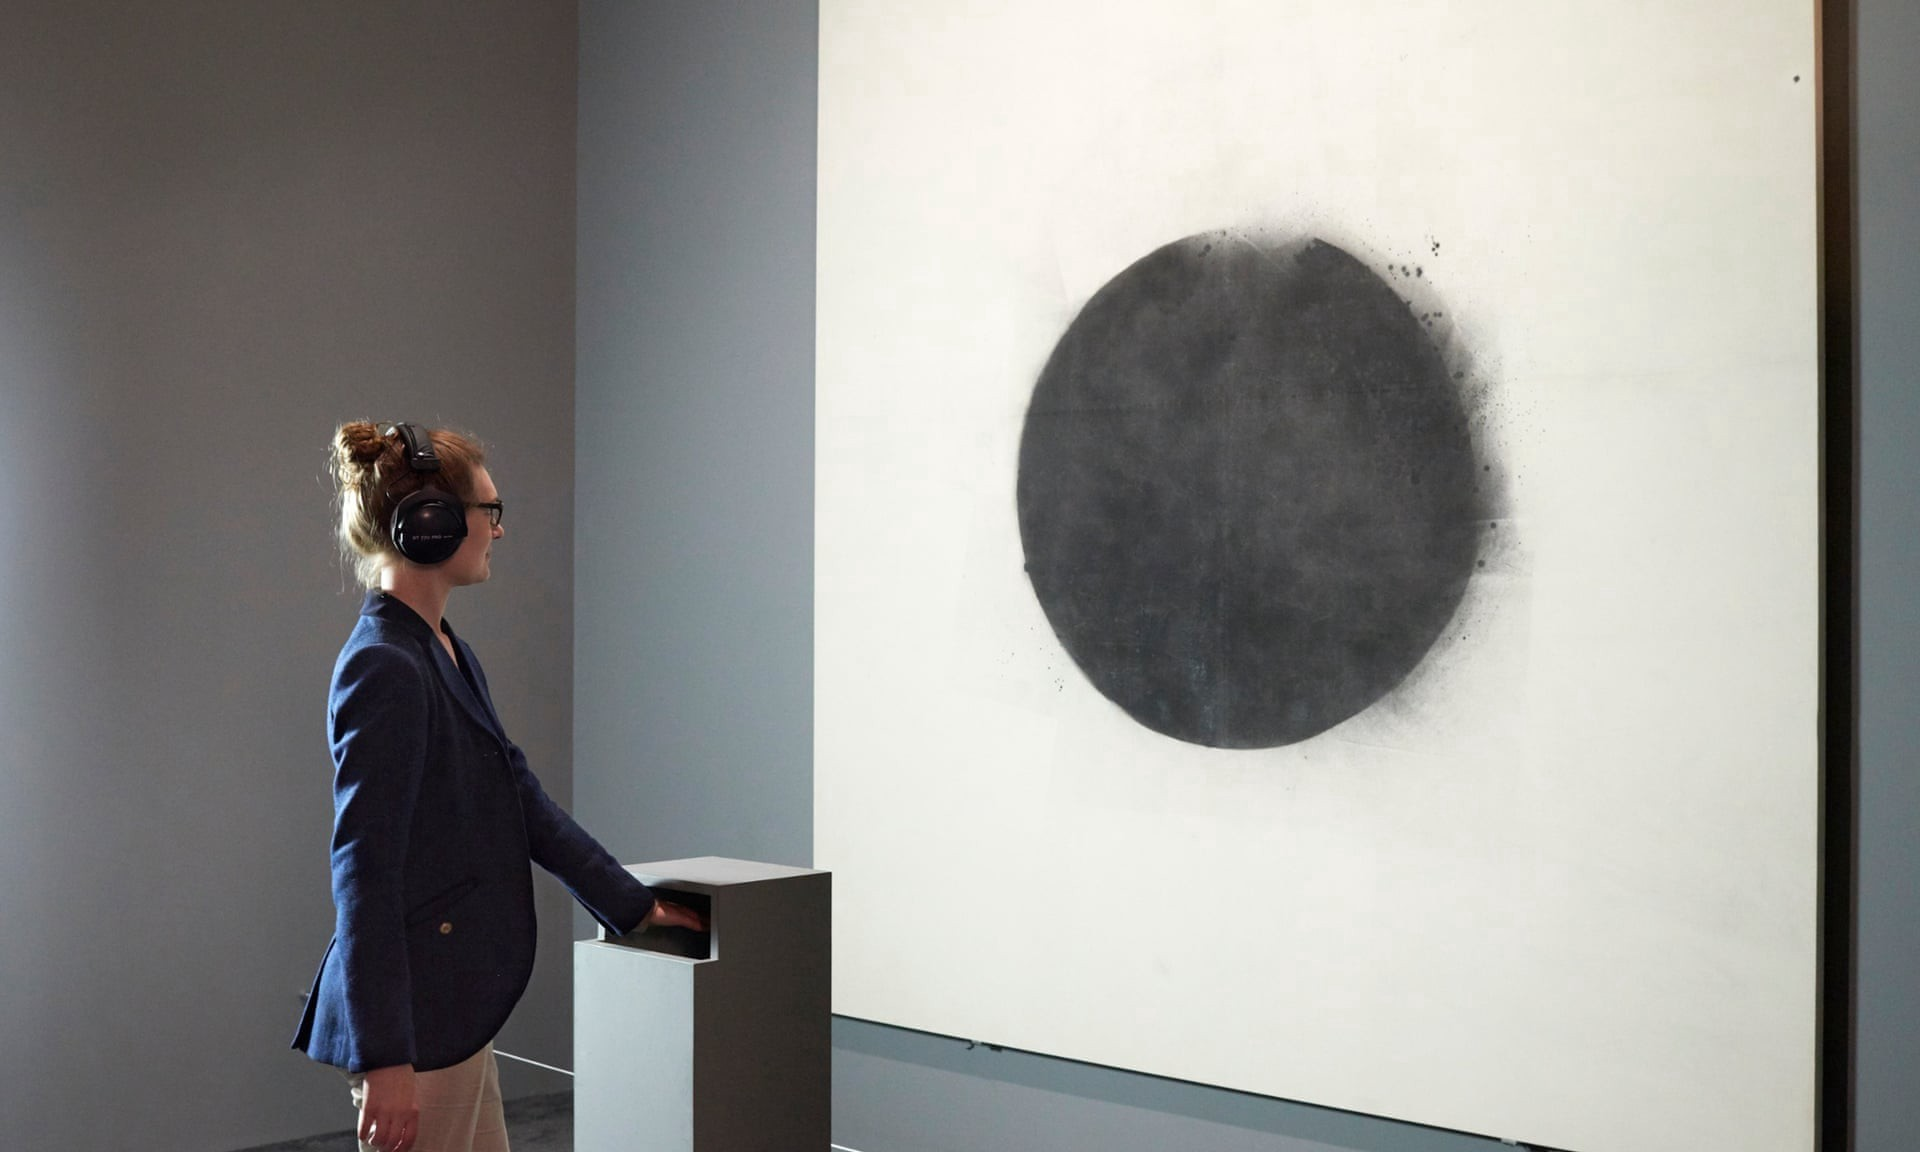 woman touches an equipment that simmulates raindrops, while looks at painting